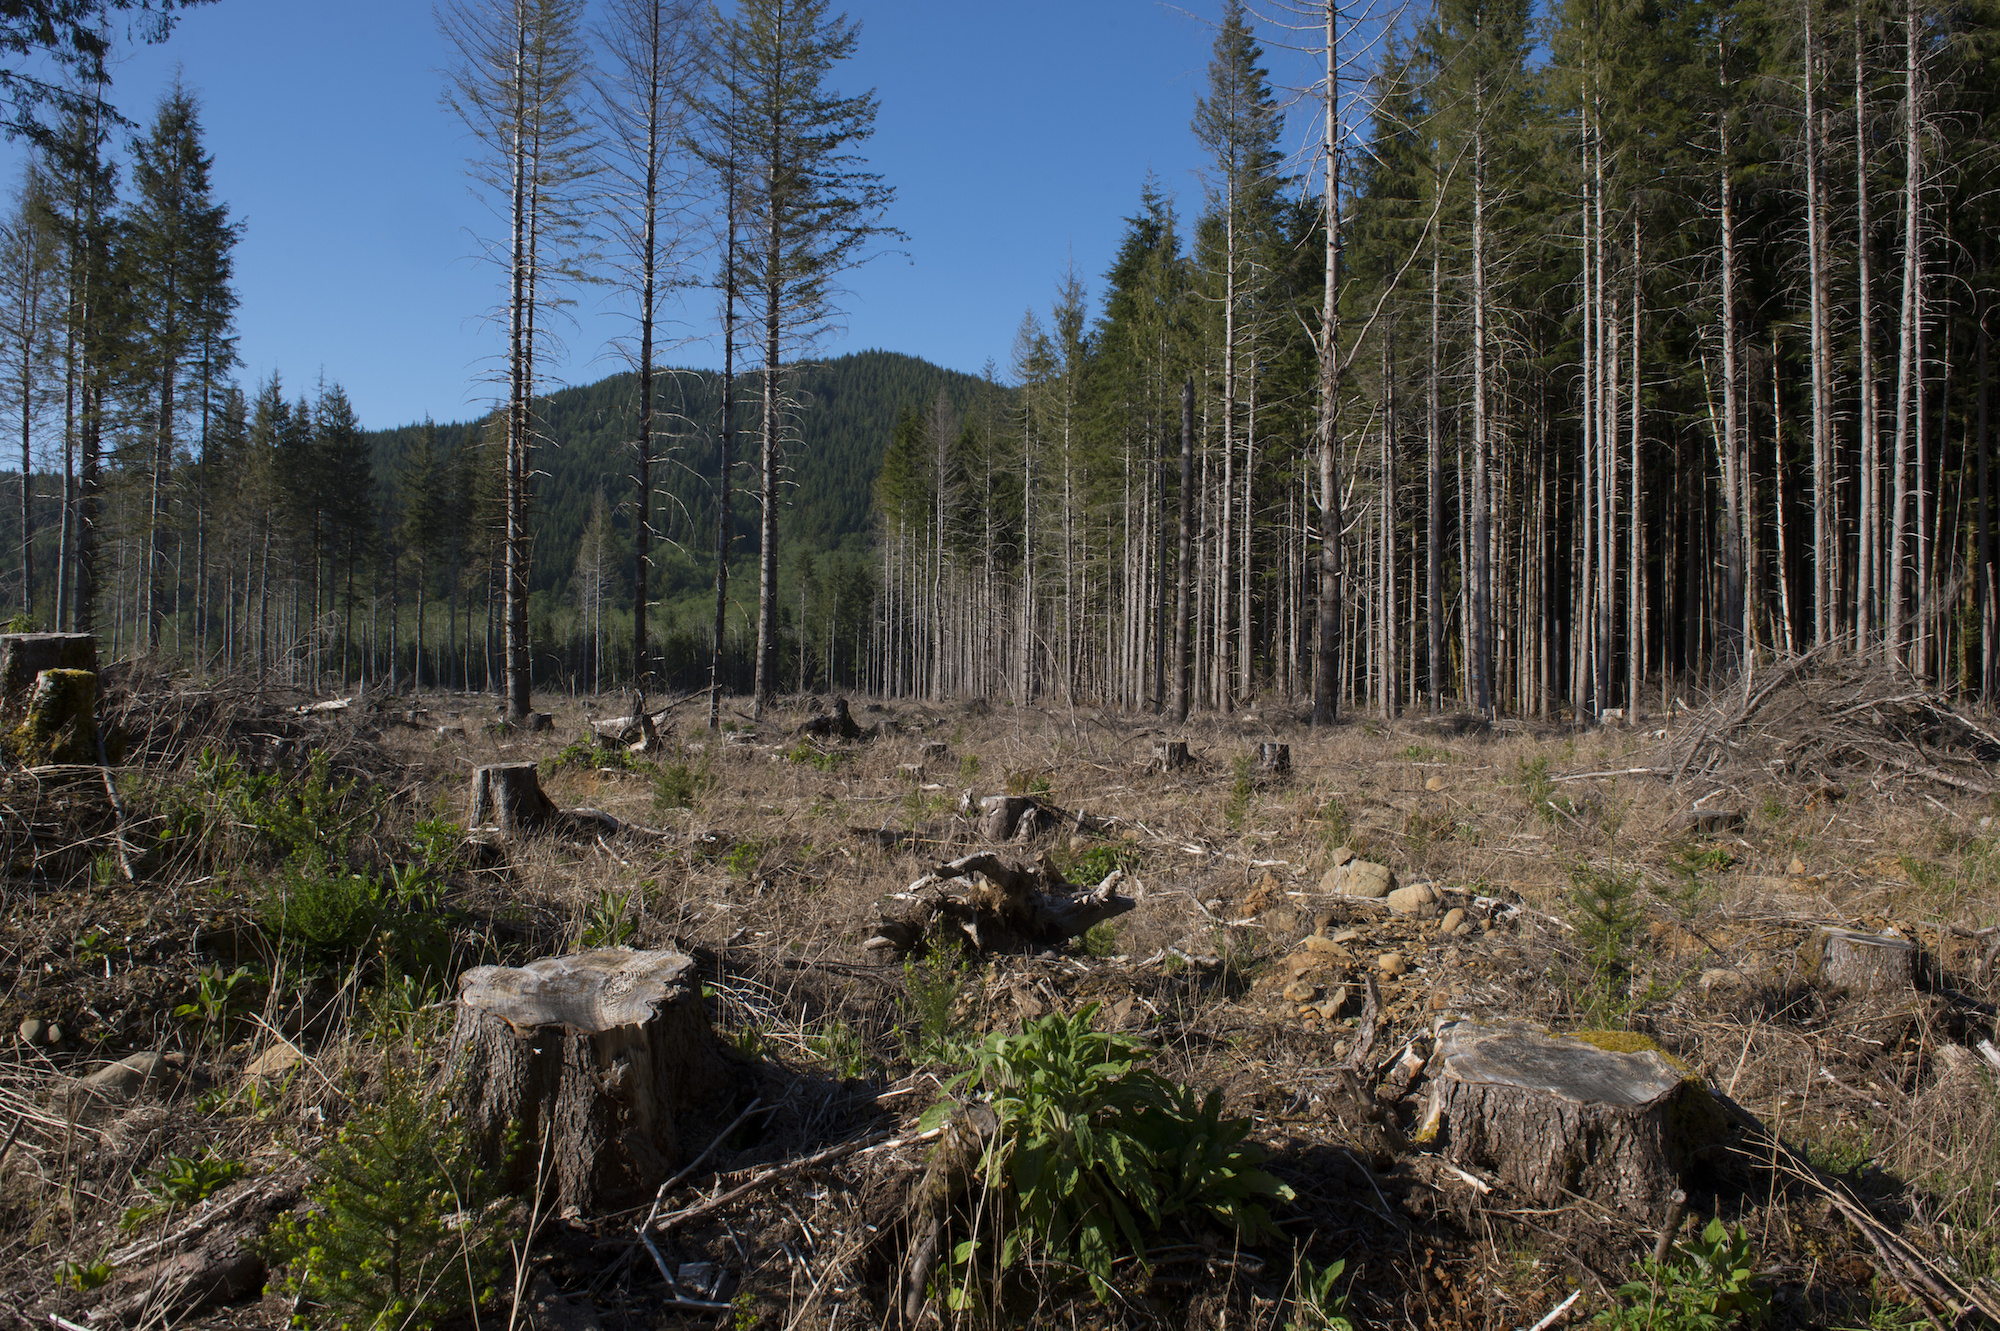 a large field of stumps where large old growth trees once stood. In the background, blue skies and tall green trees.